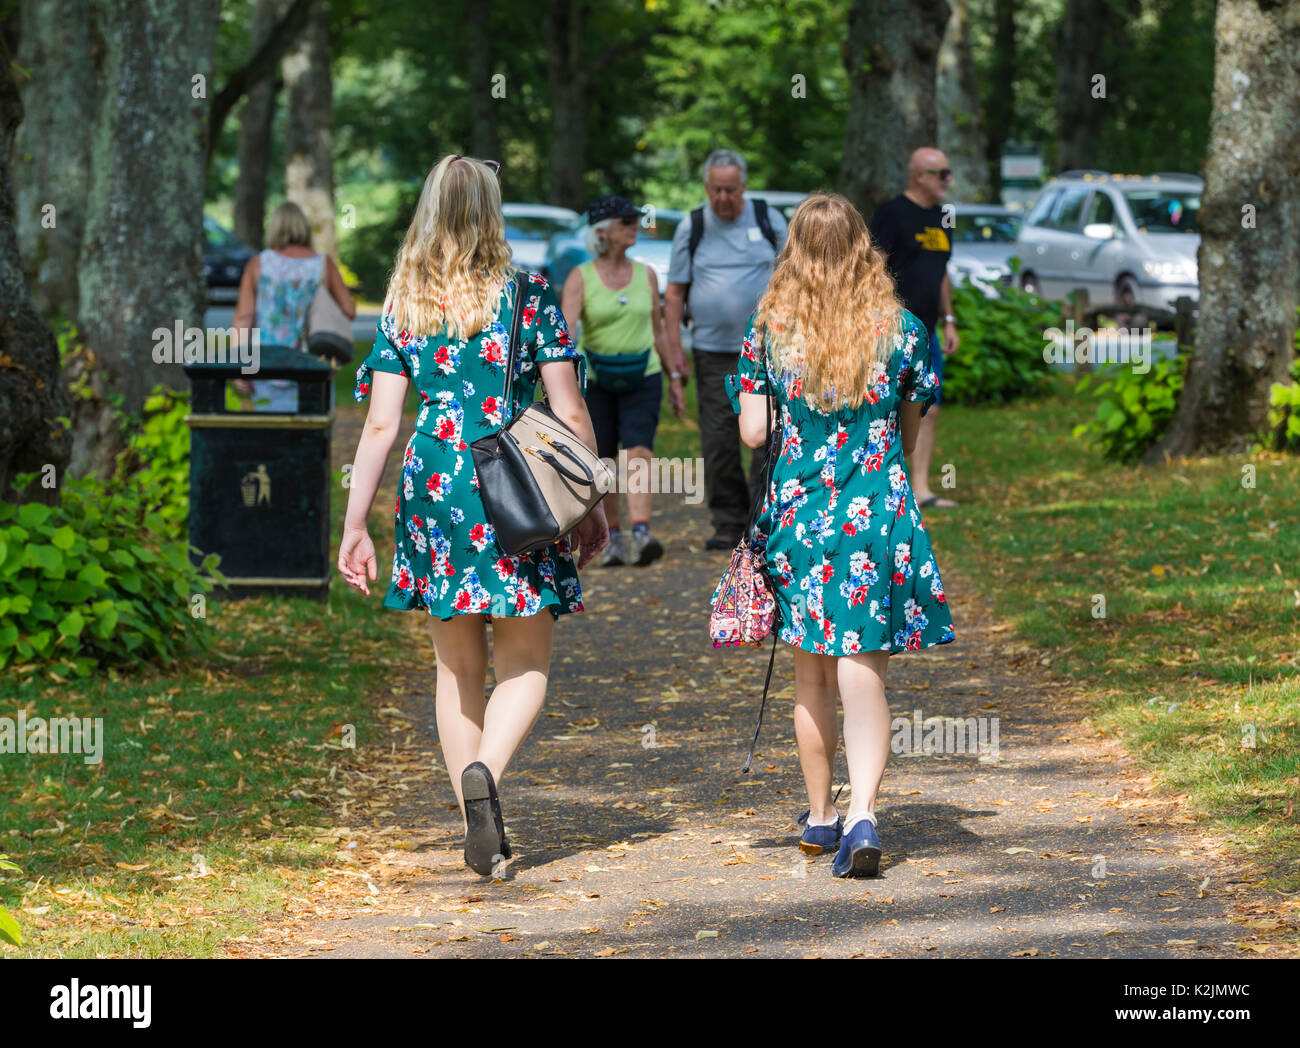 pair-of-young-women-dressed-in-identical